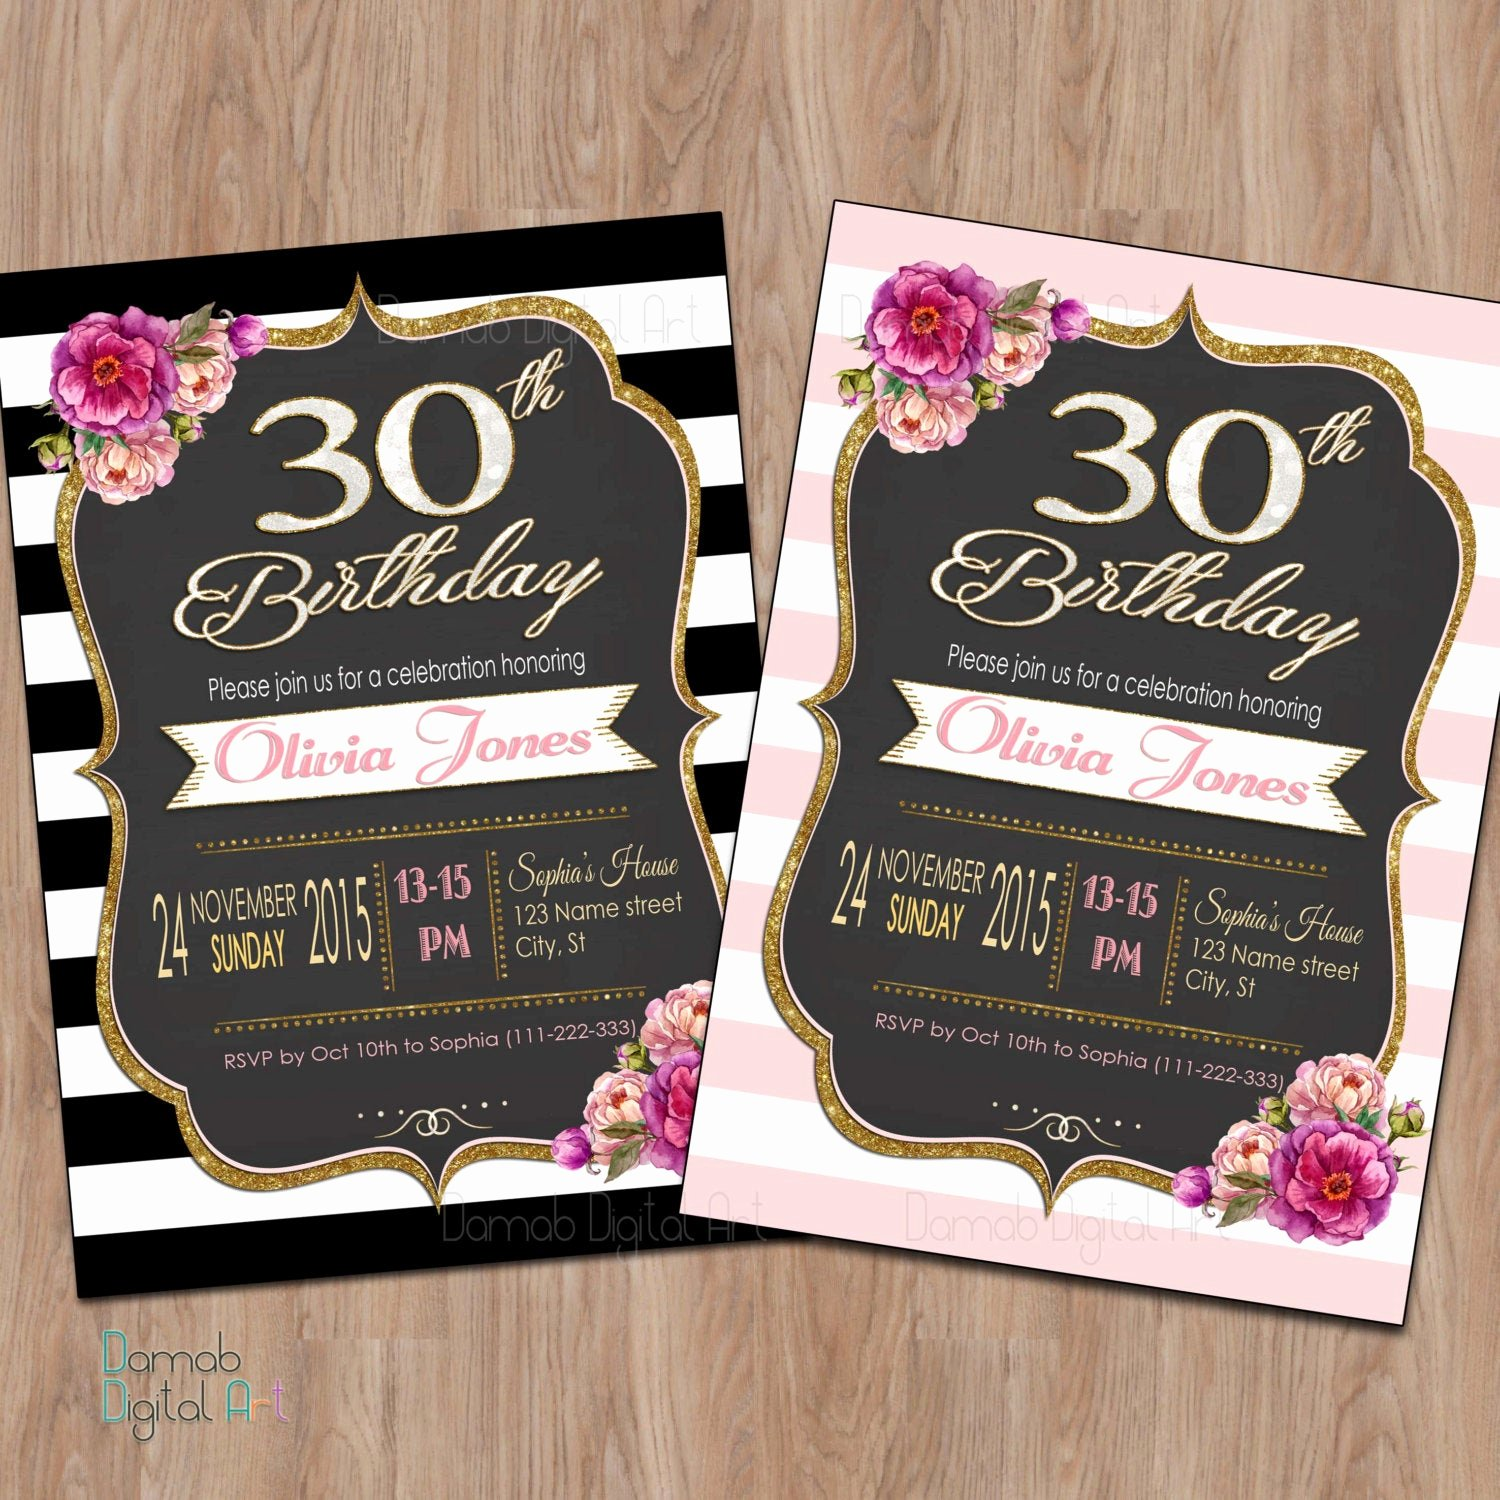 Birthday Invitations for Women Fresh 30th Birthday Invitation 30th Birthday Invitation for Women